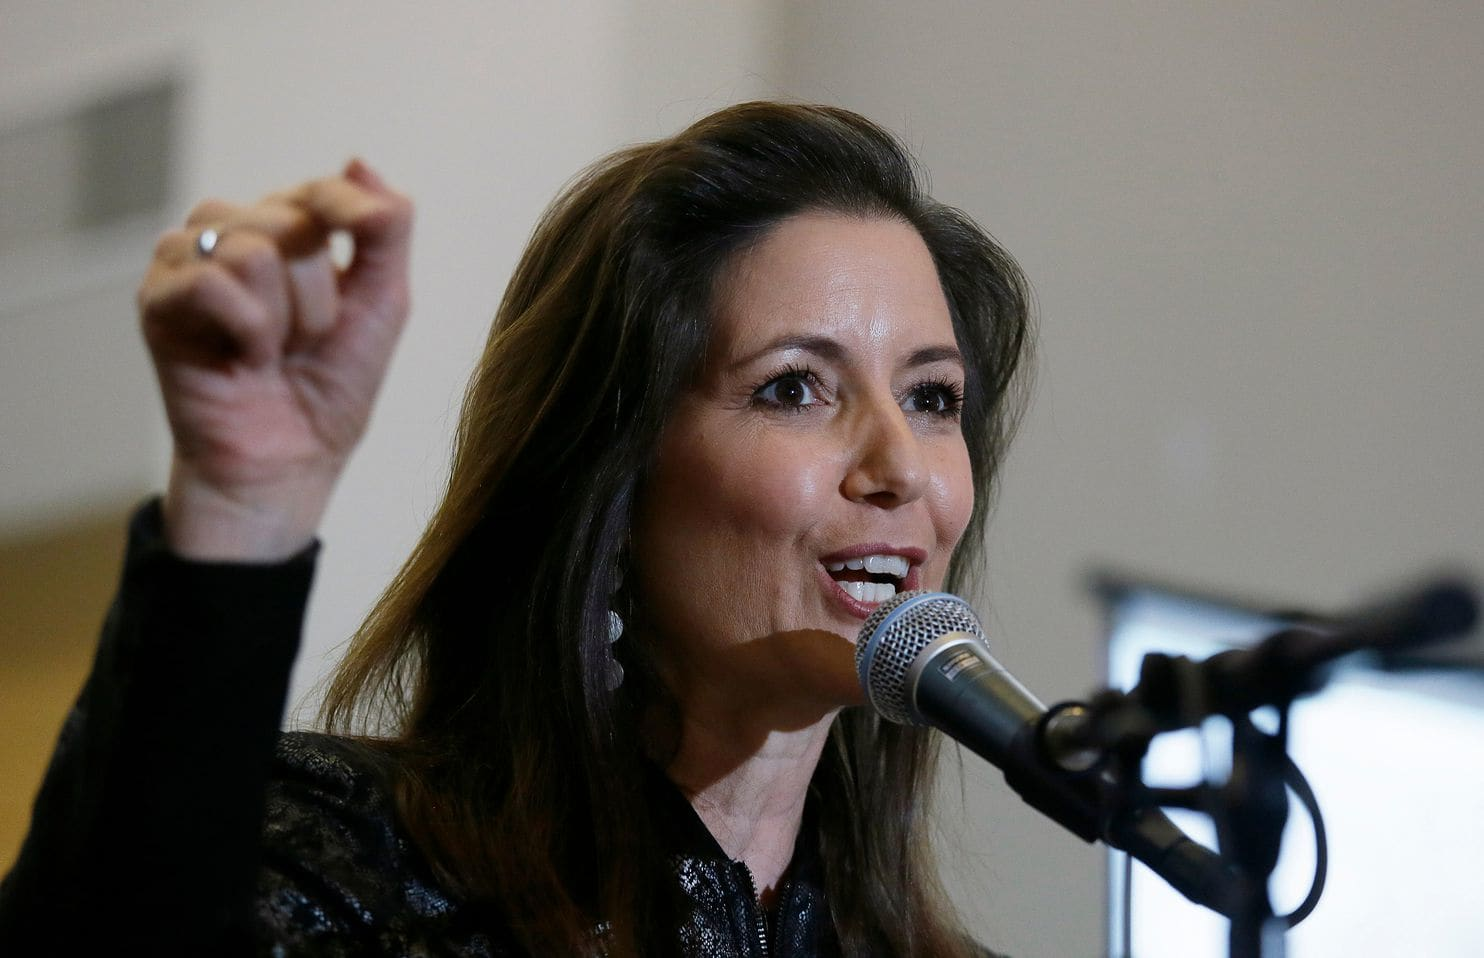 Father Whose Son Was Killed by Illegal Immigrant Flips the Script Oakland Mayor Has Blood on Her Hands VIDEO